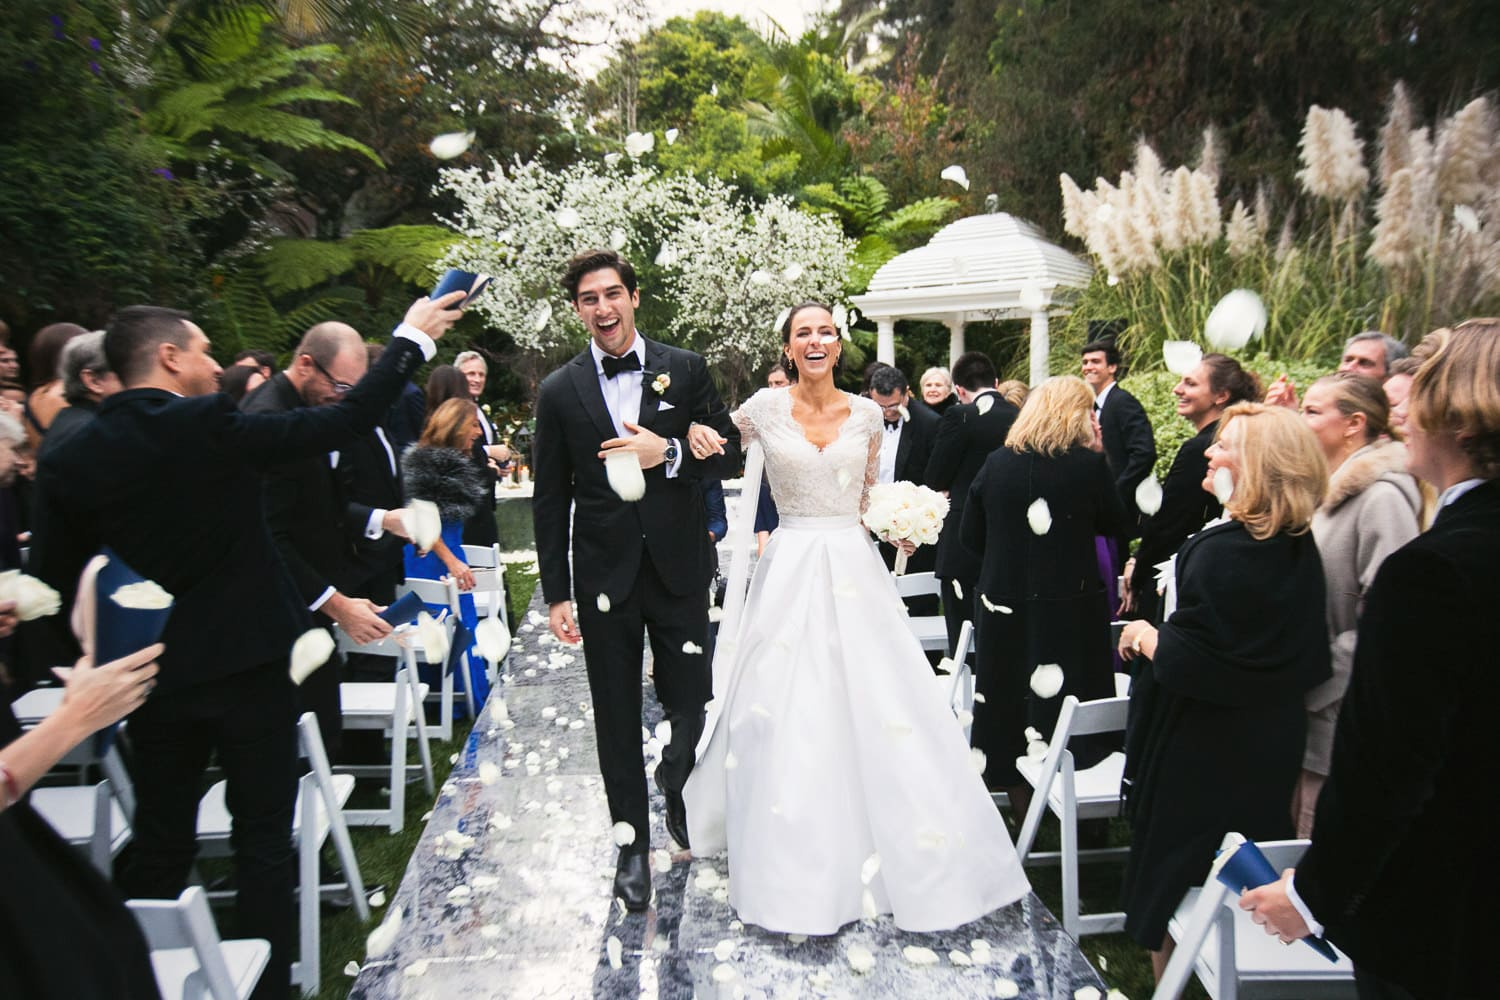 Walking down the aisle with flowers being thrown in the air after they said I do at the Hotel Bel-Air